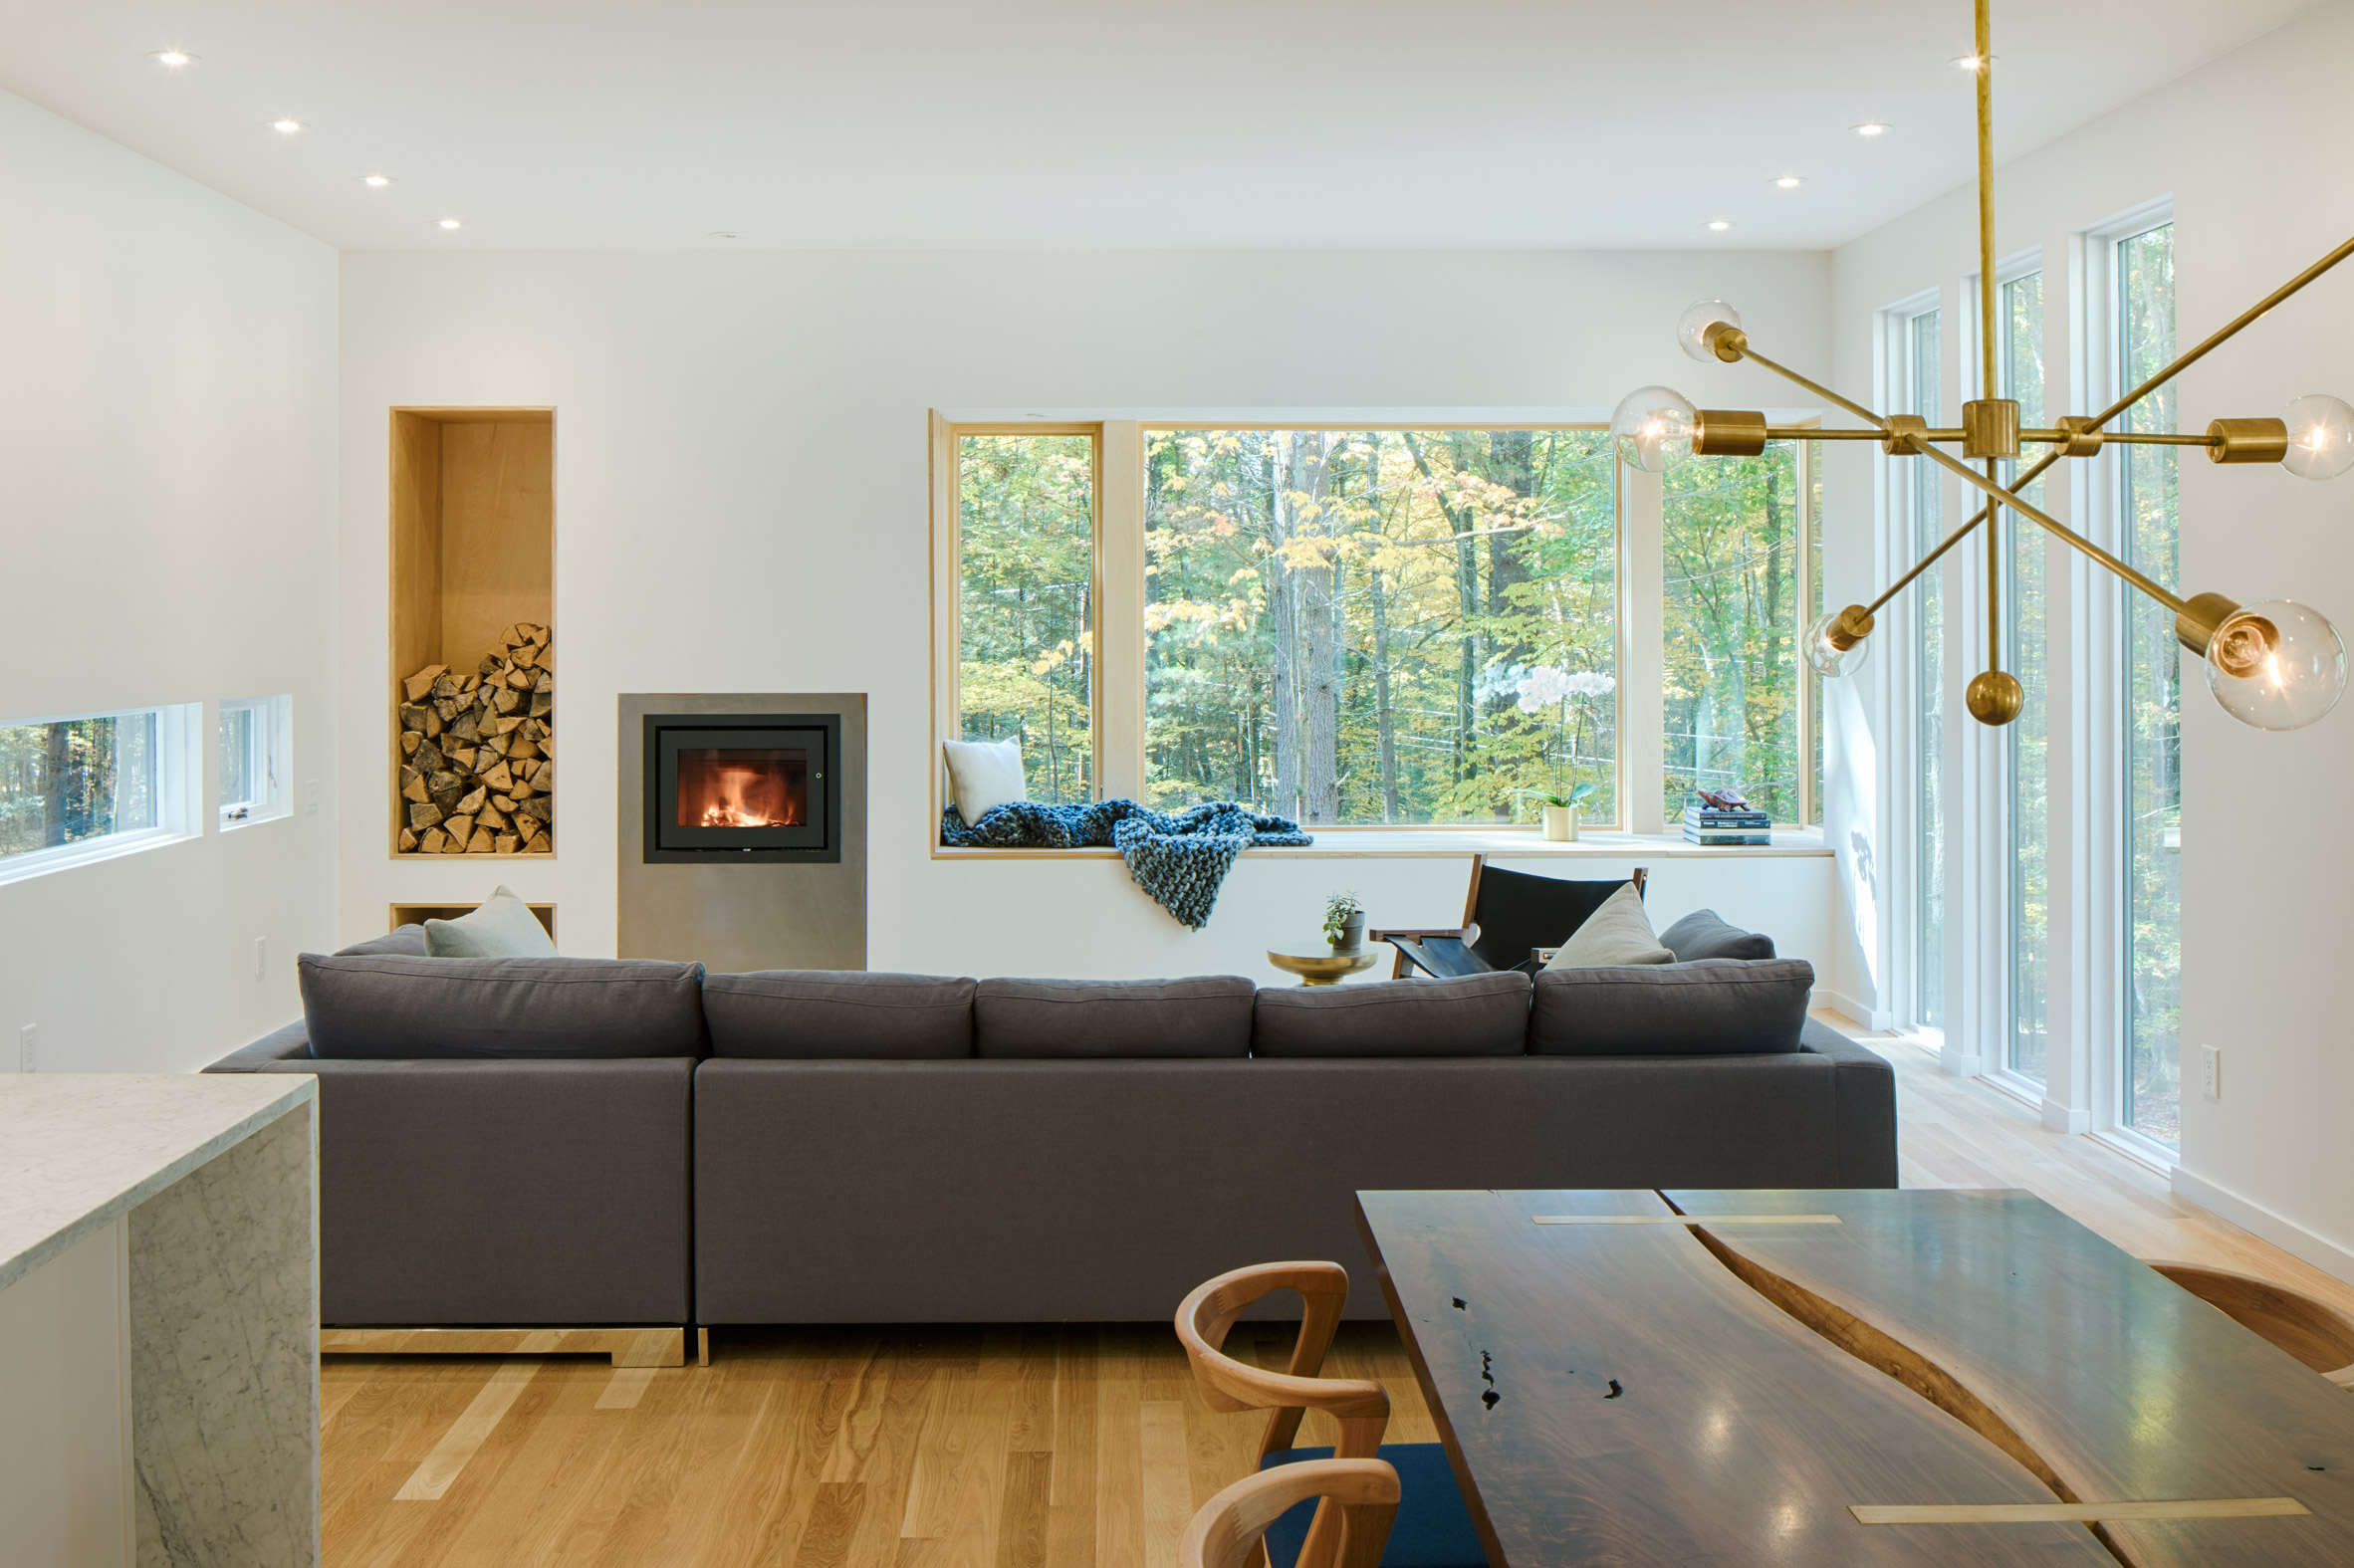 living room with a stylish firewood storage in a wall